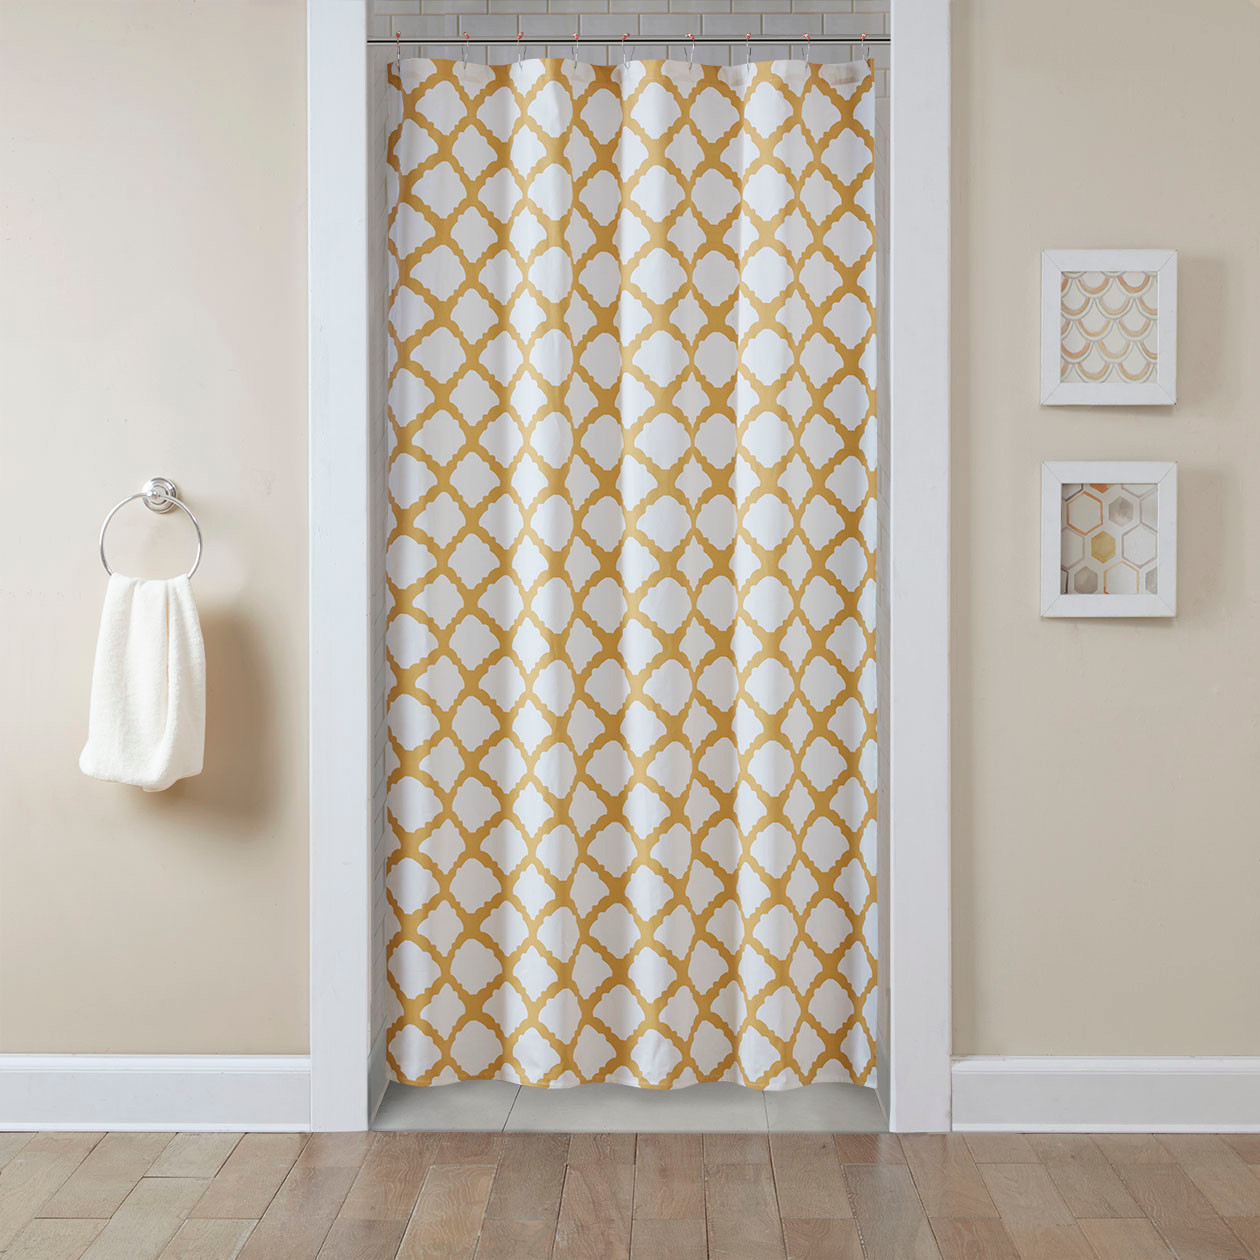 Bathroom plastic curtains - Stall Curtains